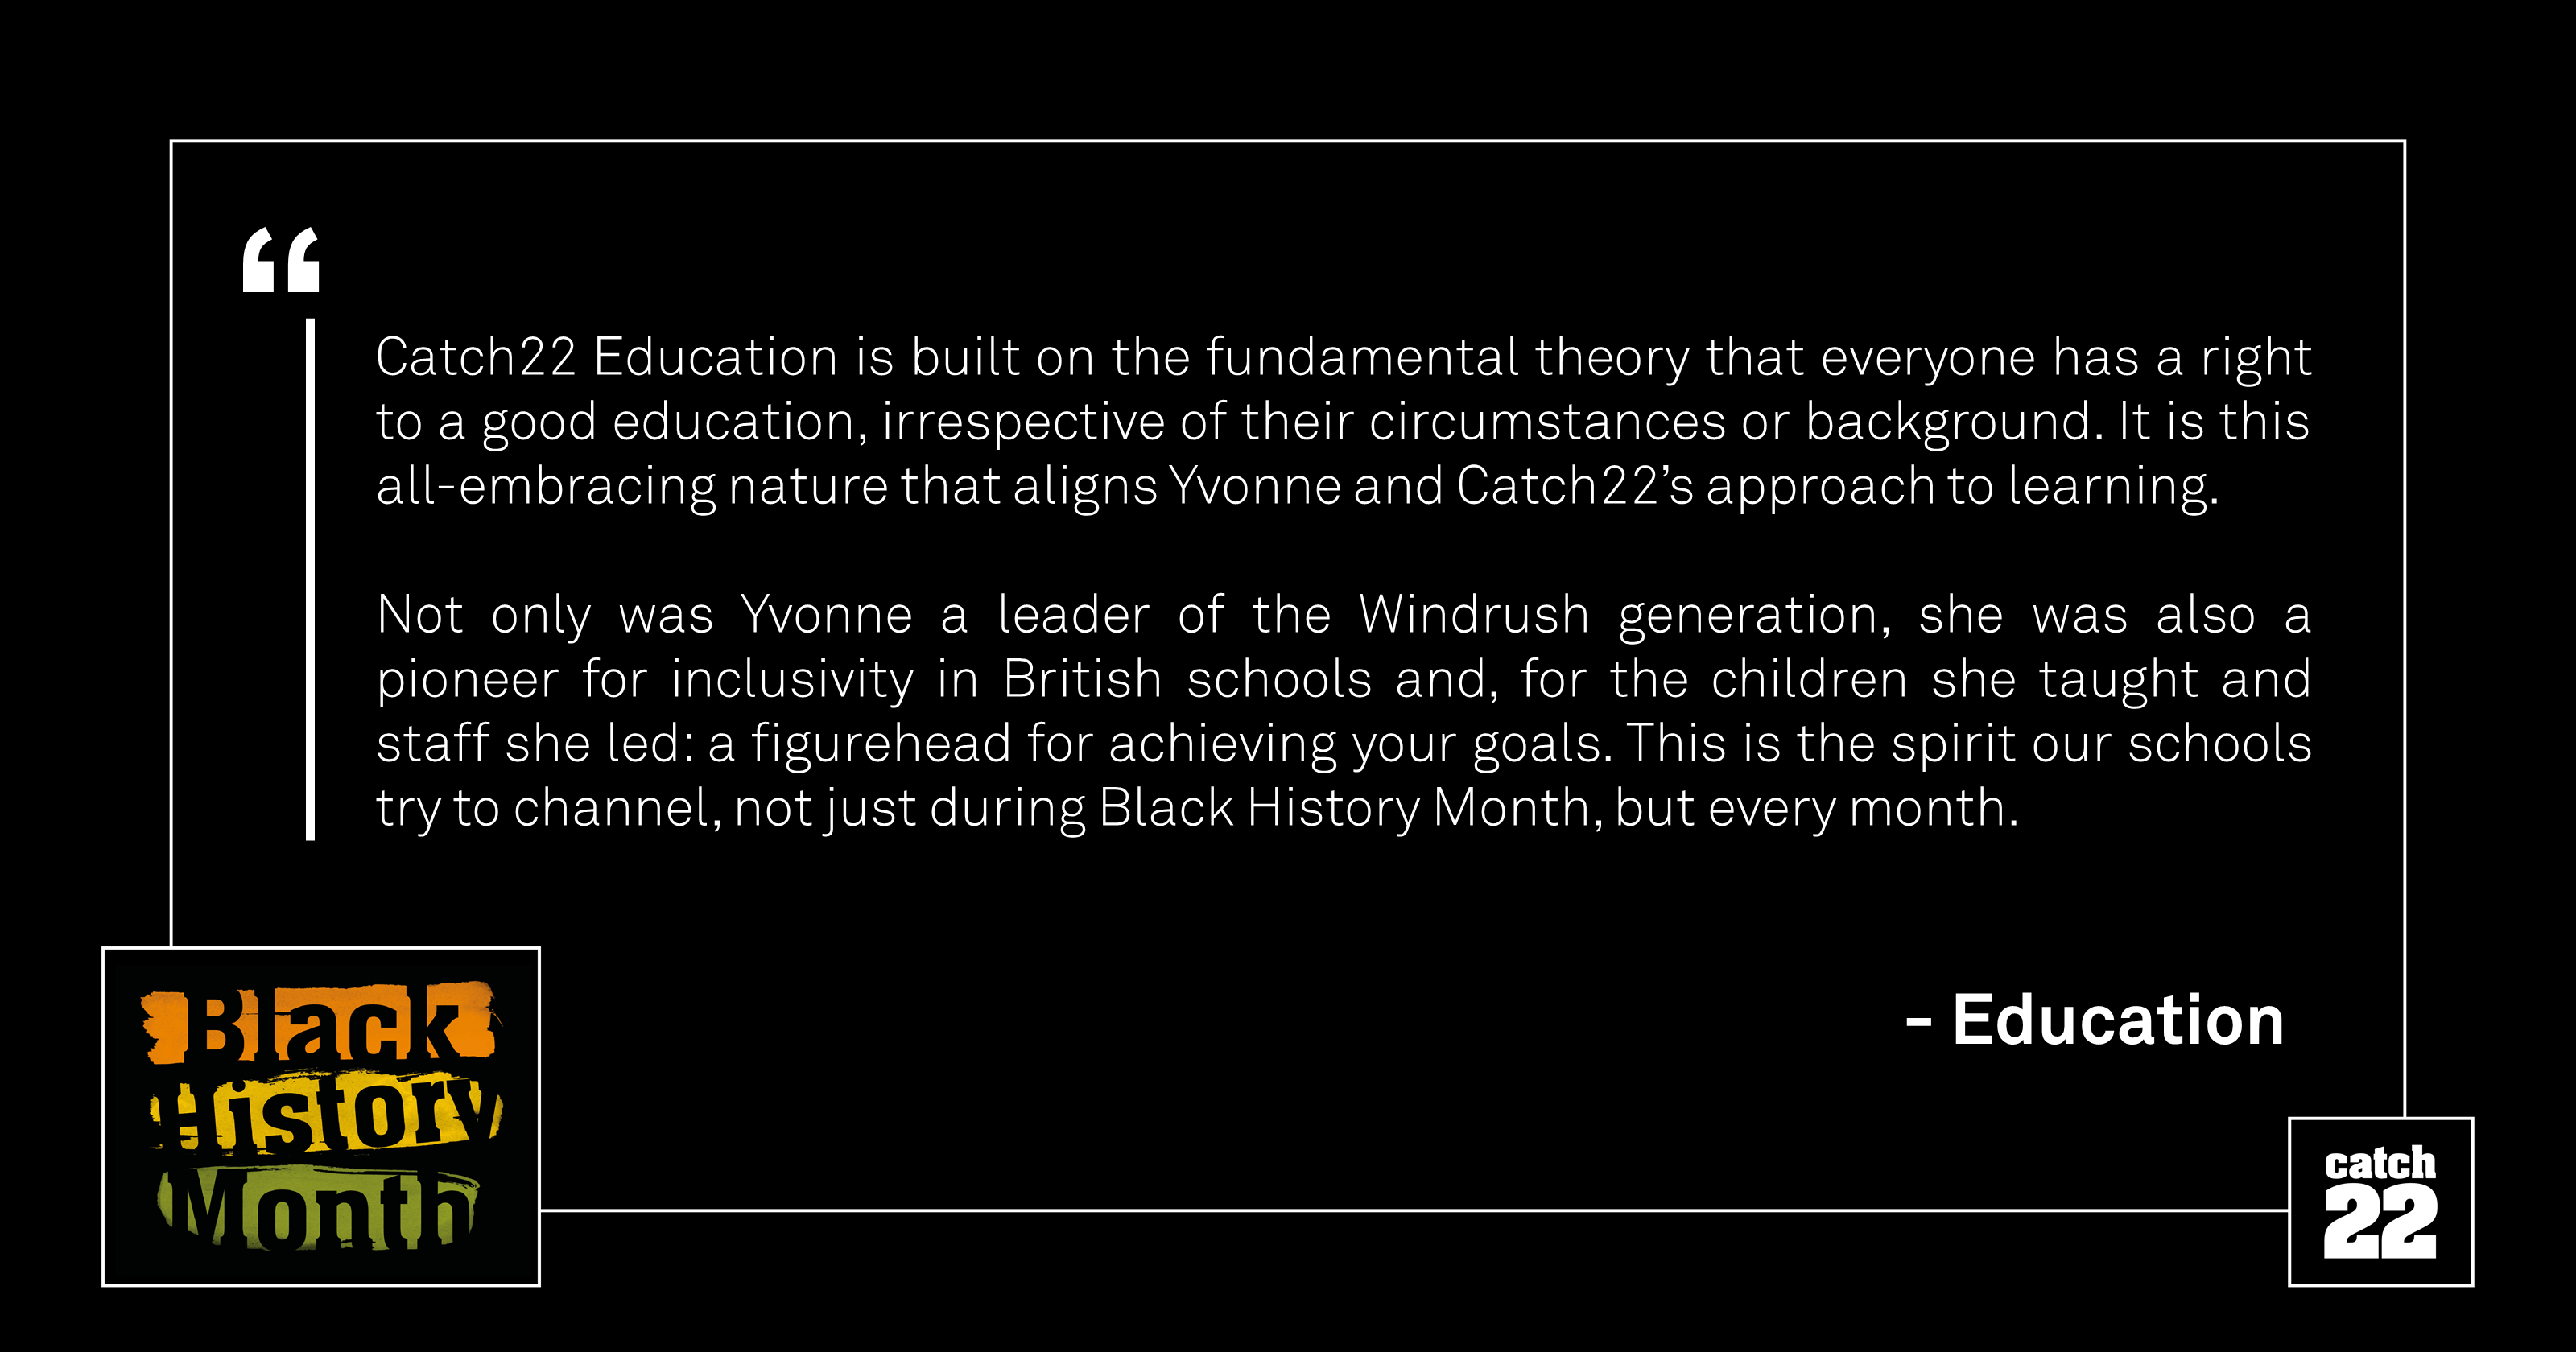 Catch22 Education is built on the fundamental theory that everyone has a right to a good education, irrespective of their circumstances or background. It is this all-embracing nature that aligns Yvonne and Catch22's approach to learning. Not only was Yvonne a leader of the Windrush generation, she was also a pioneer for inclusivity in British schools and, for the children she taught and staff she led, a figurehead for achieving your goals. This is the spirit our schools try to channel, not just during Black History Month, but every month.